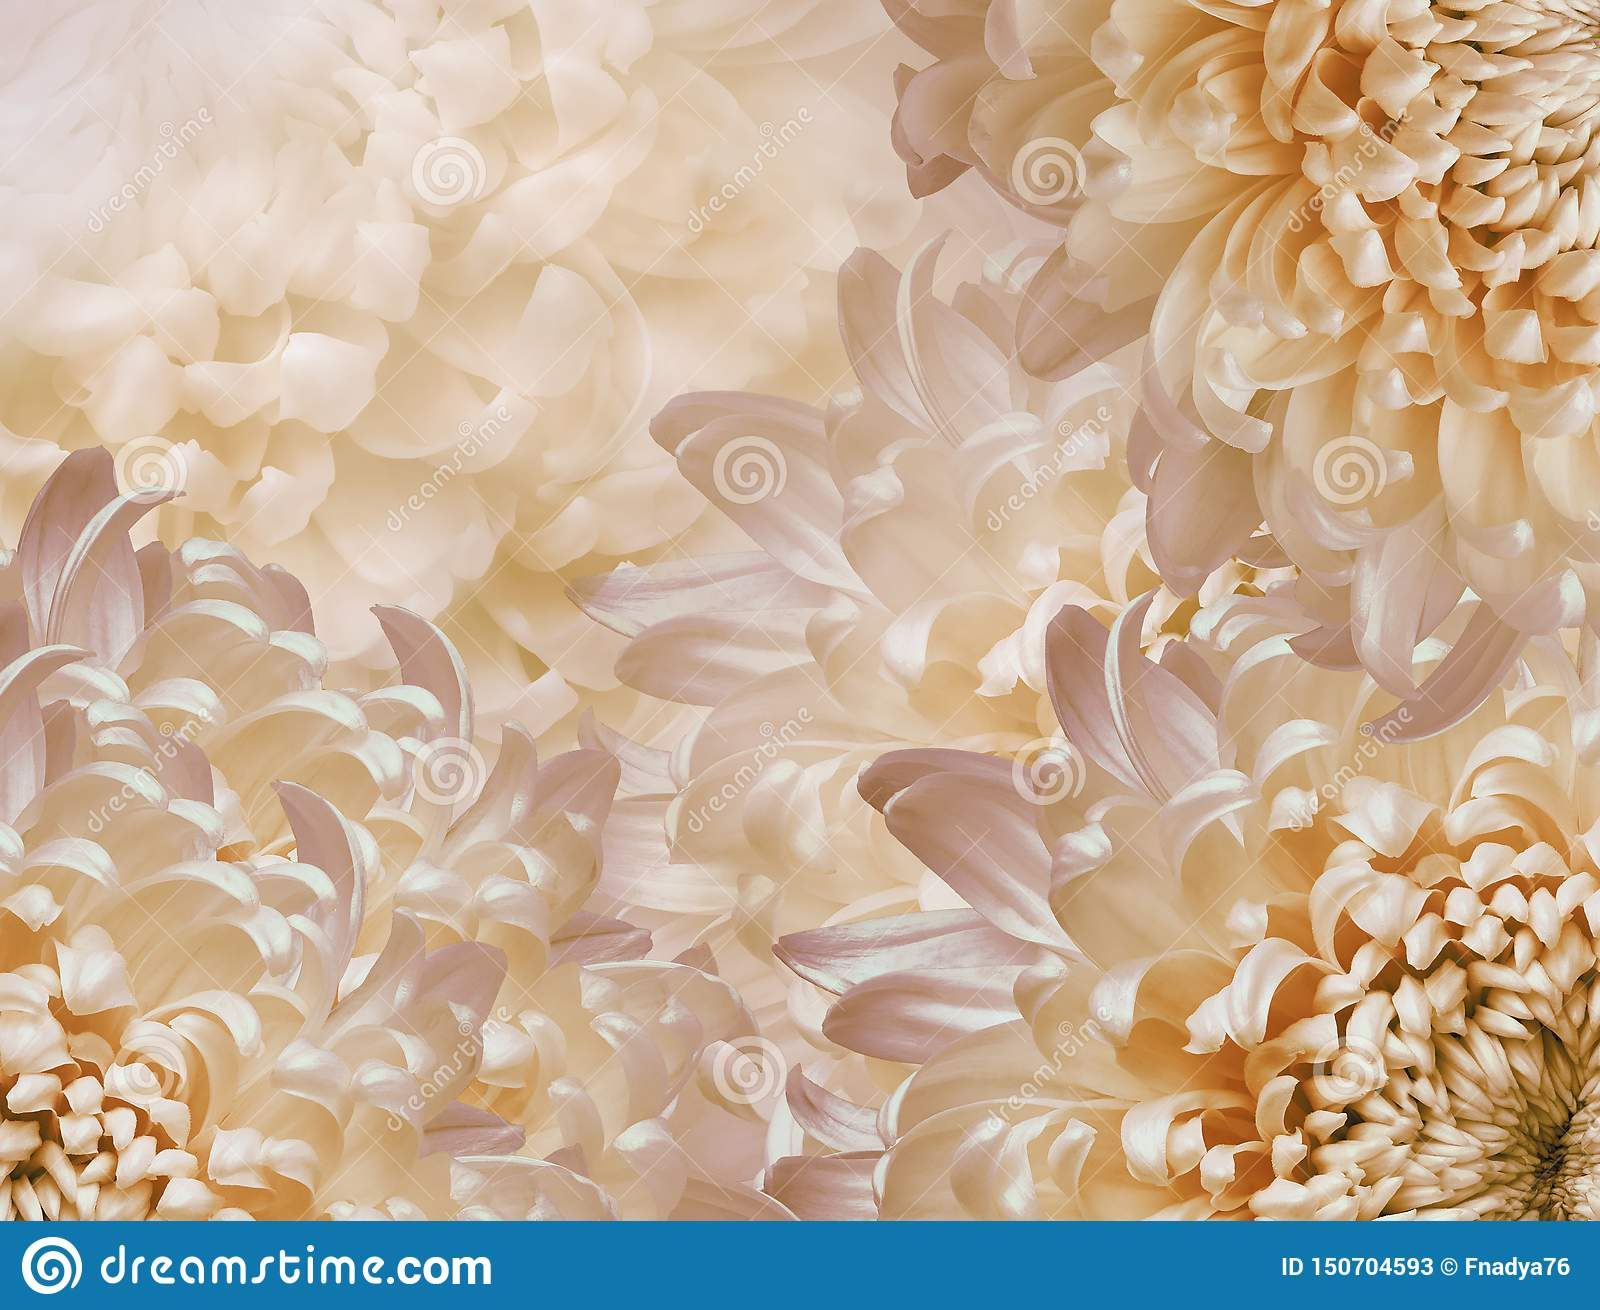 Chrysanthemum flowers. l pink and yellow and orange background. floral collage. flower composition. Close-up.